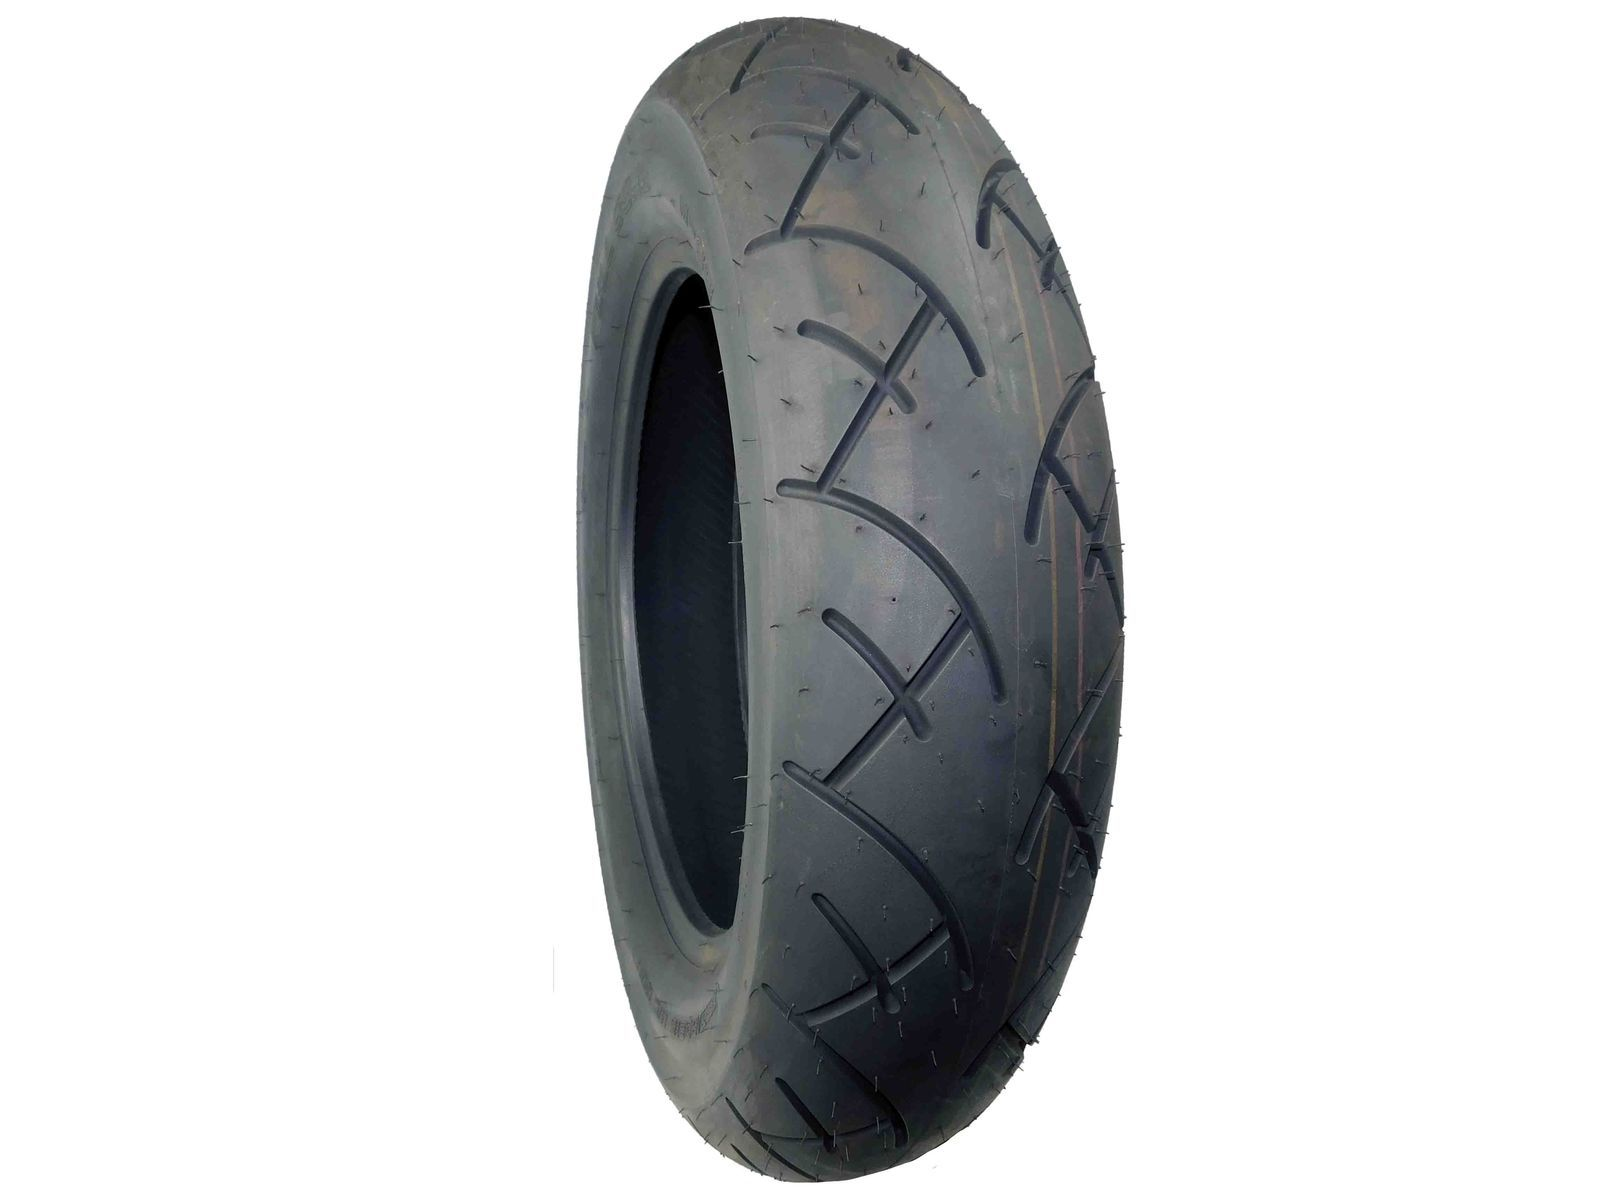 Full-Bore-120-70-21-Front-150-90-15-Rear-Set-Cruiser-Motorcycle-Tires-image-4